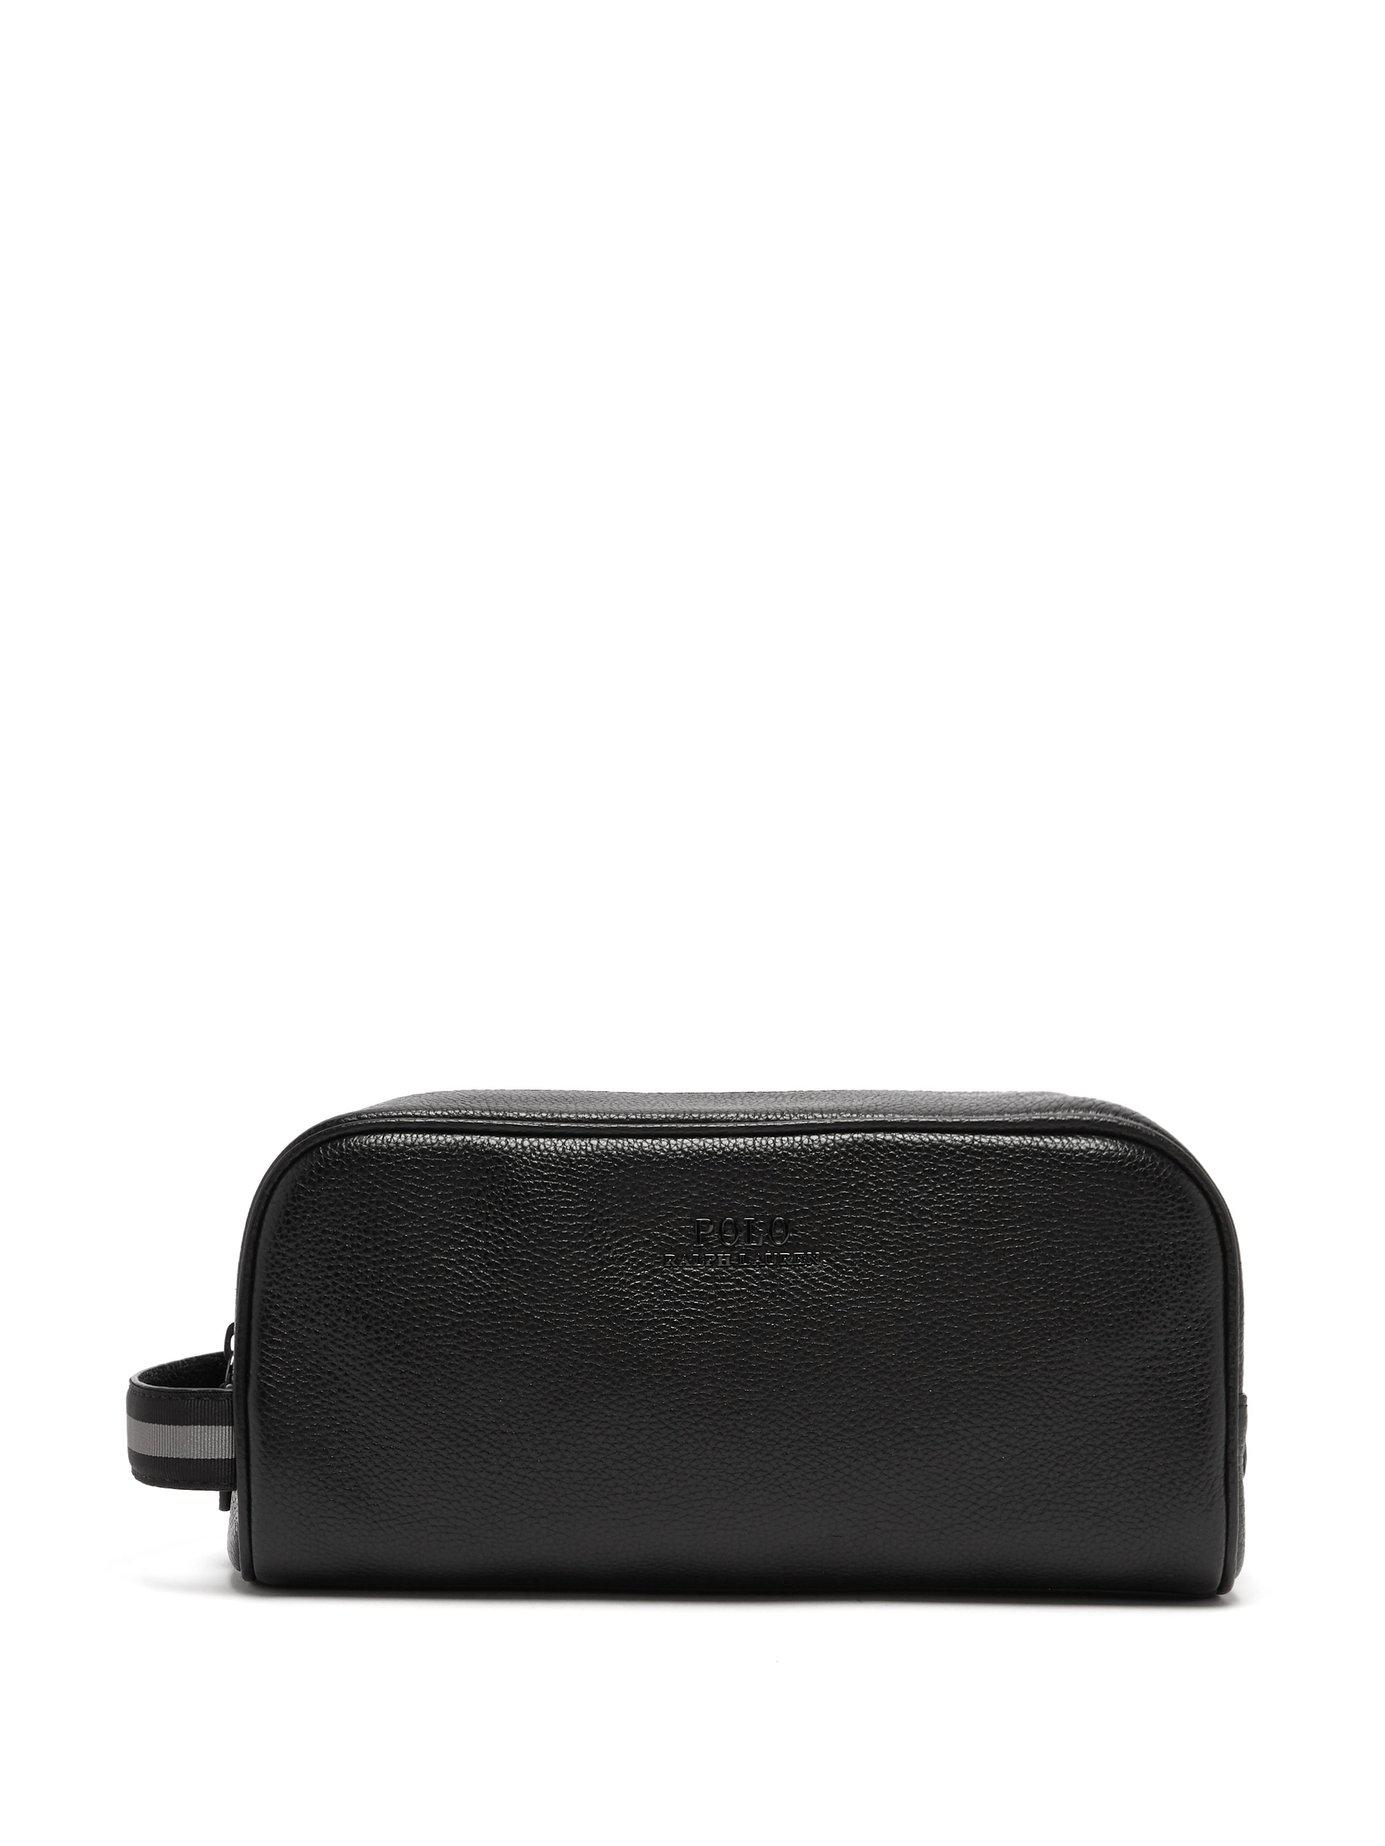 f6bb55b7ca8 Lyst - Polo Ralph Lauren Grained Leather Washbag in Black for Men